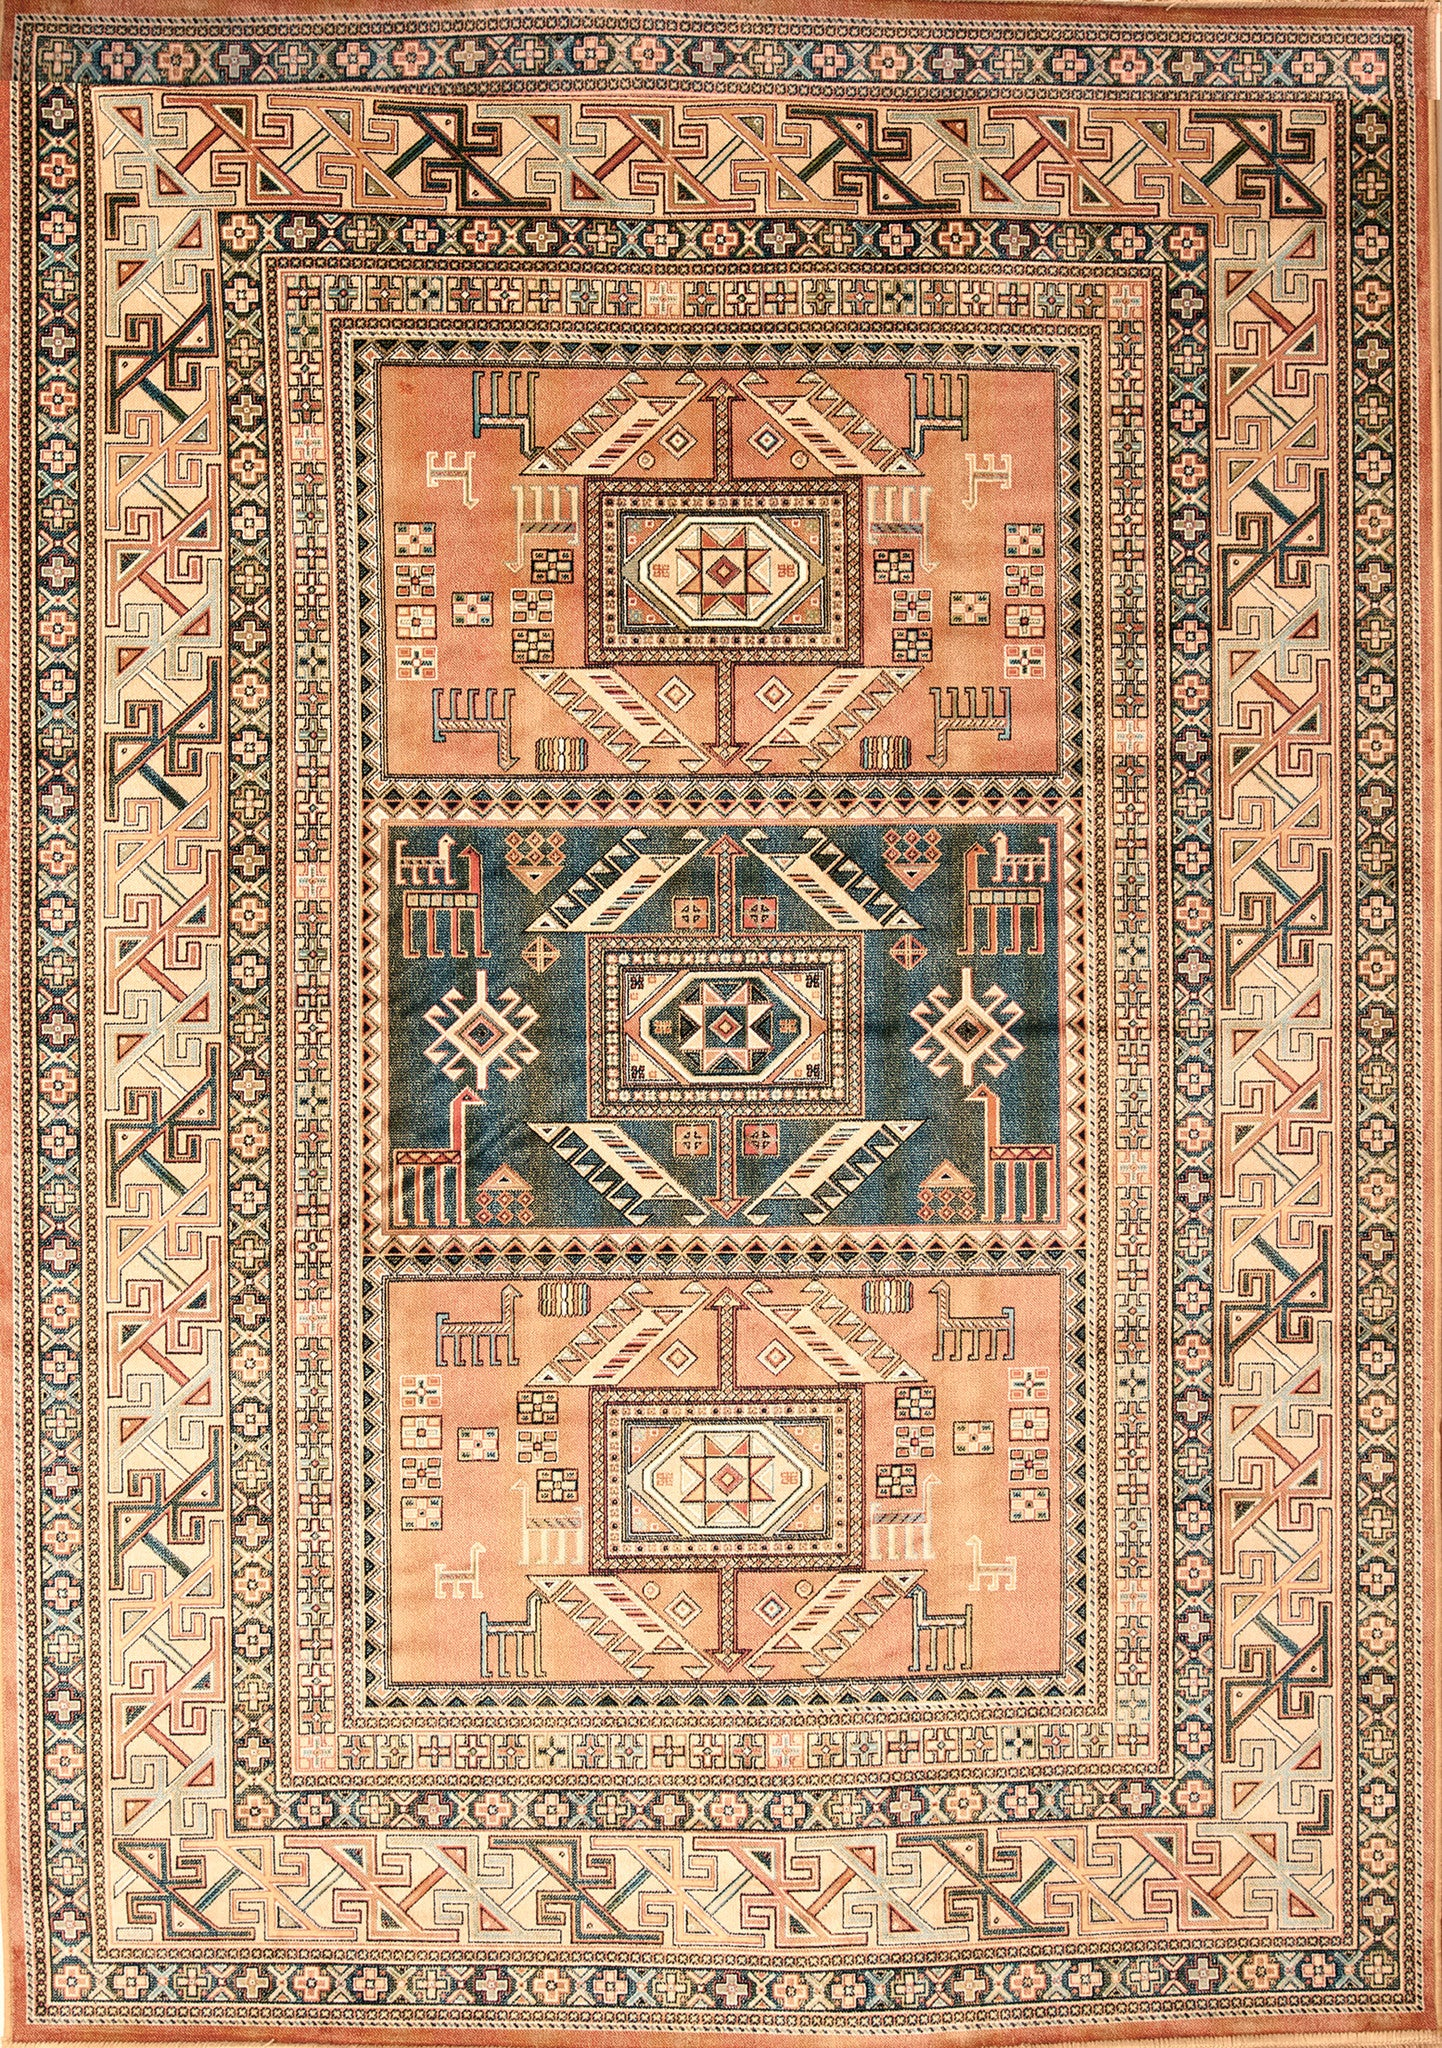 Southwest Santa Fe New Mexico Copper Colored Rug